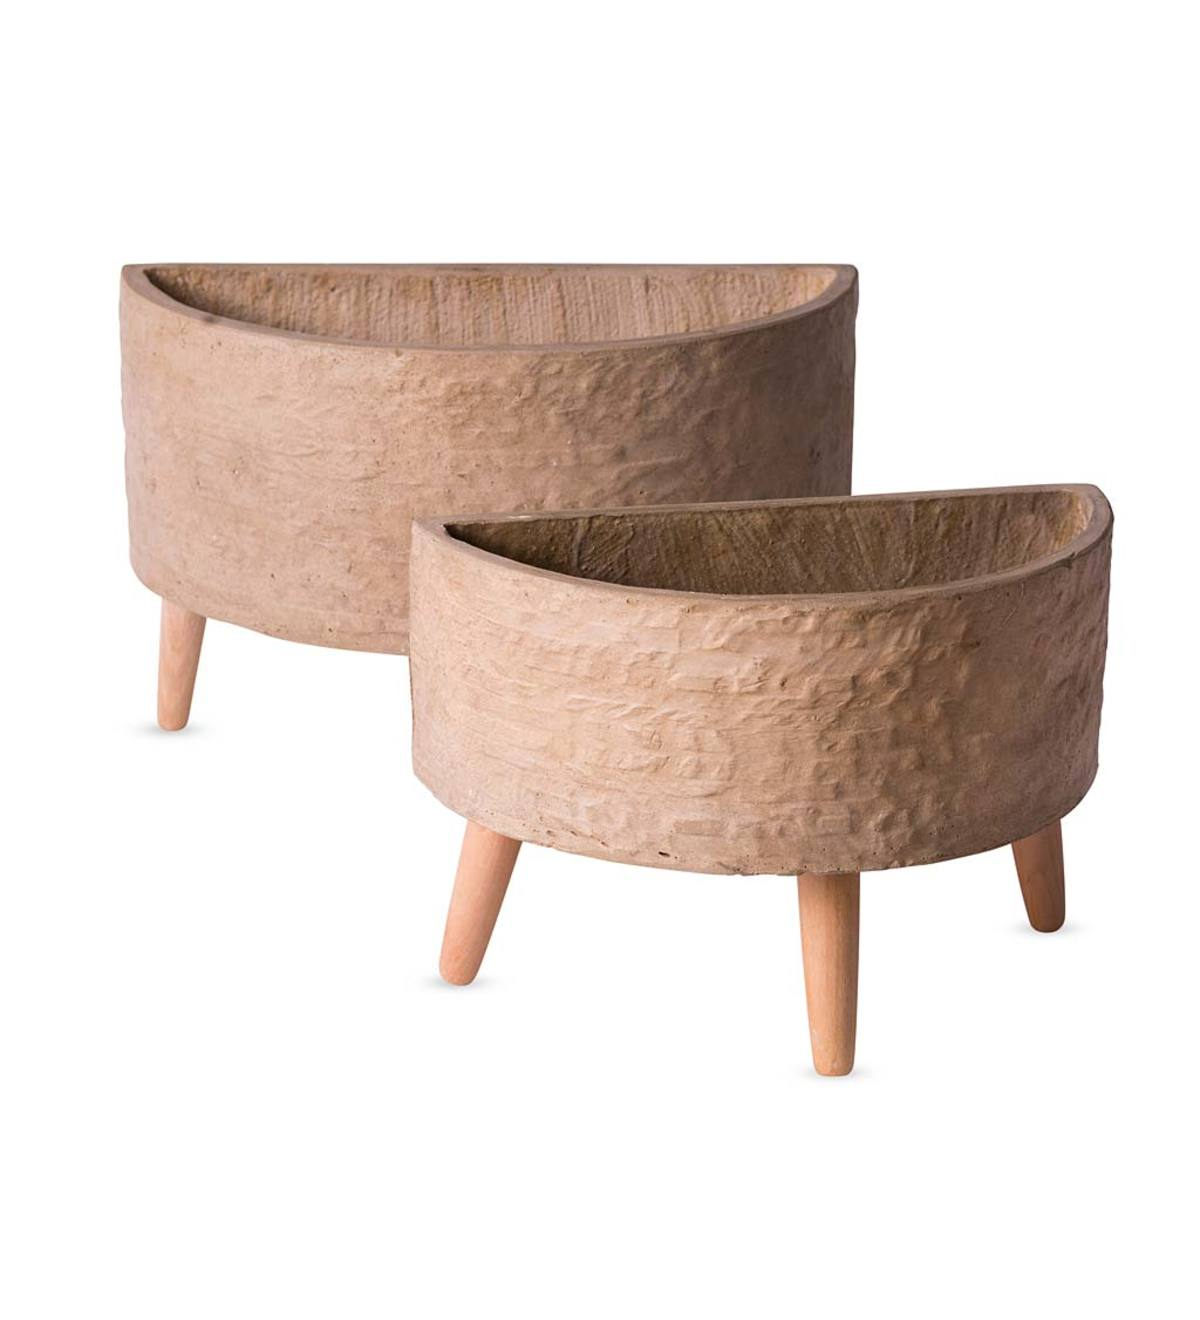 Arc Footed Planters, Set of 2 - Terracotta